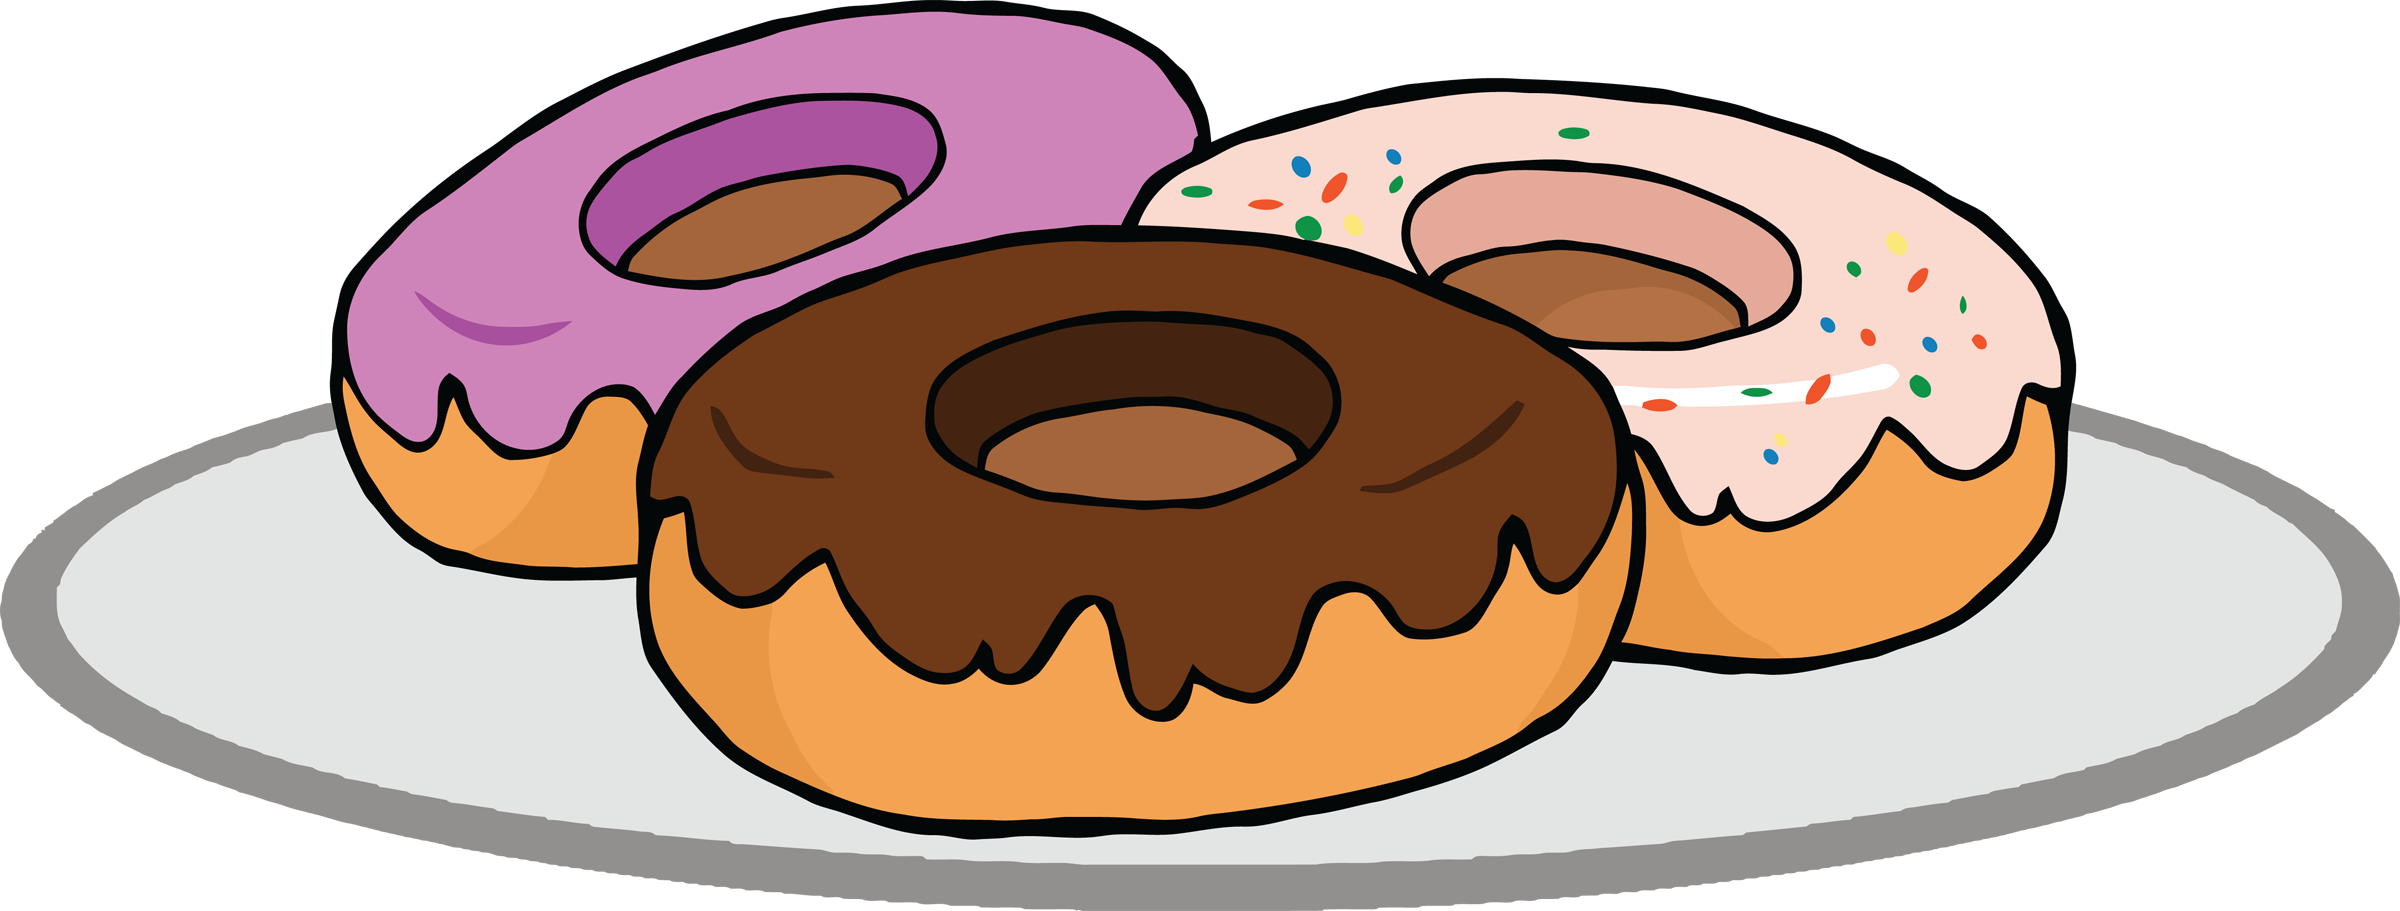 2753 Donut free clipart.